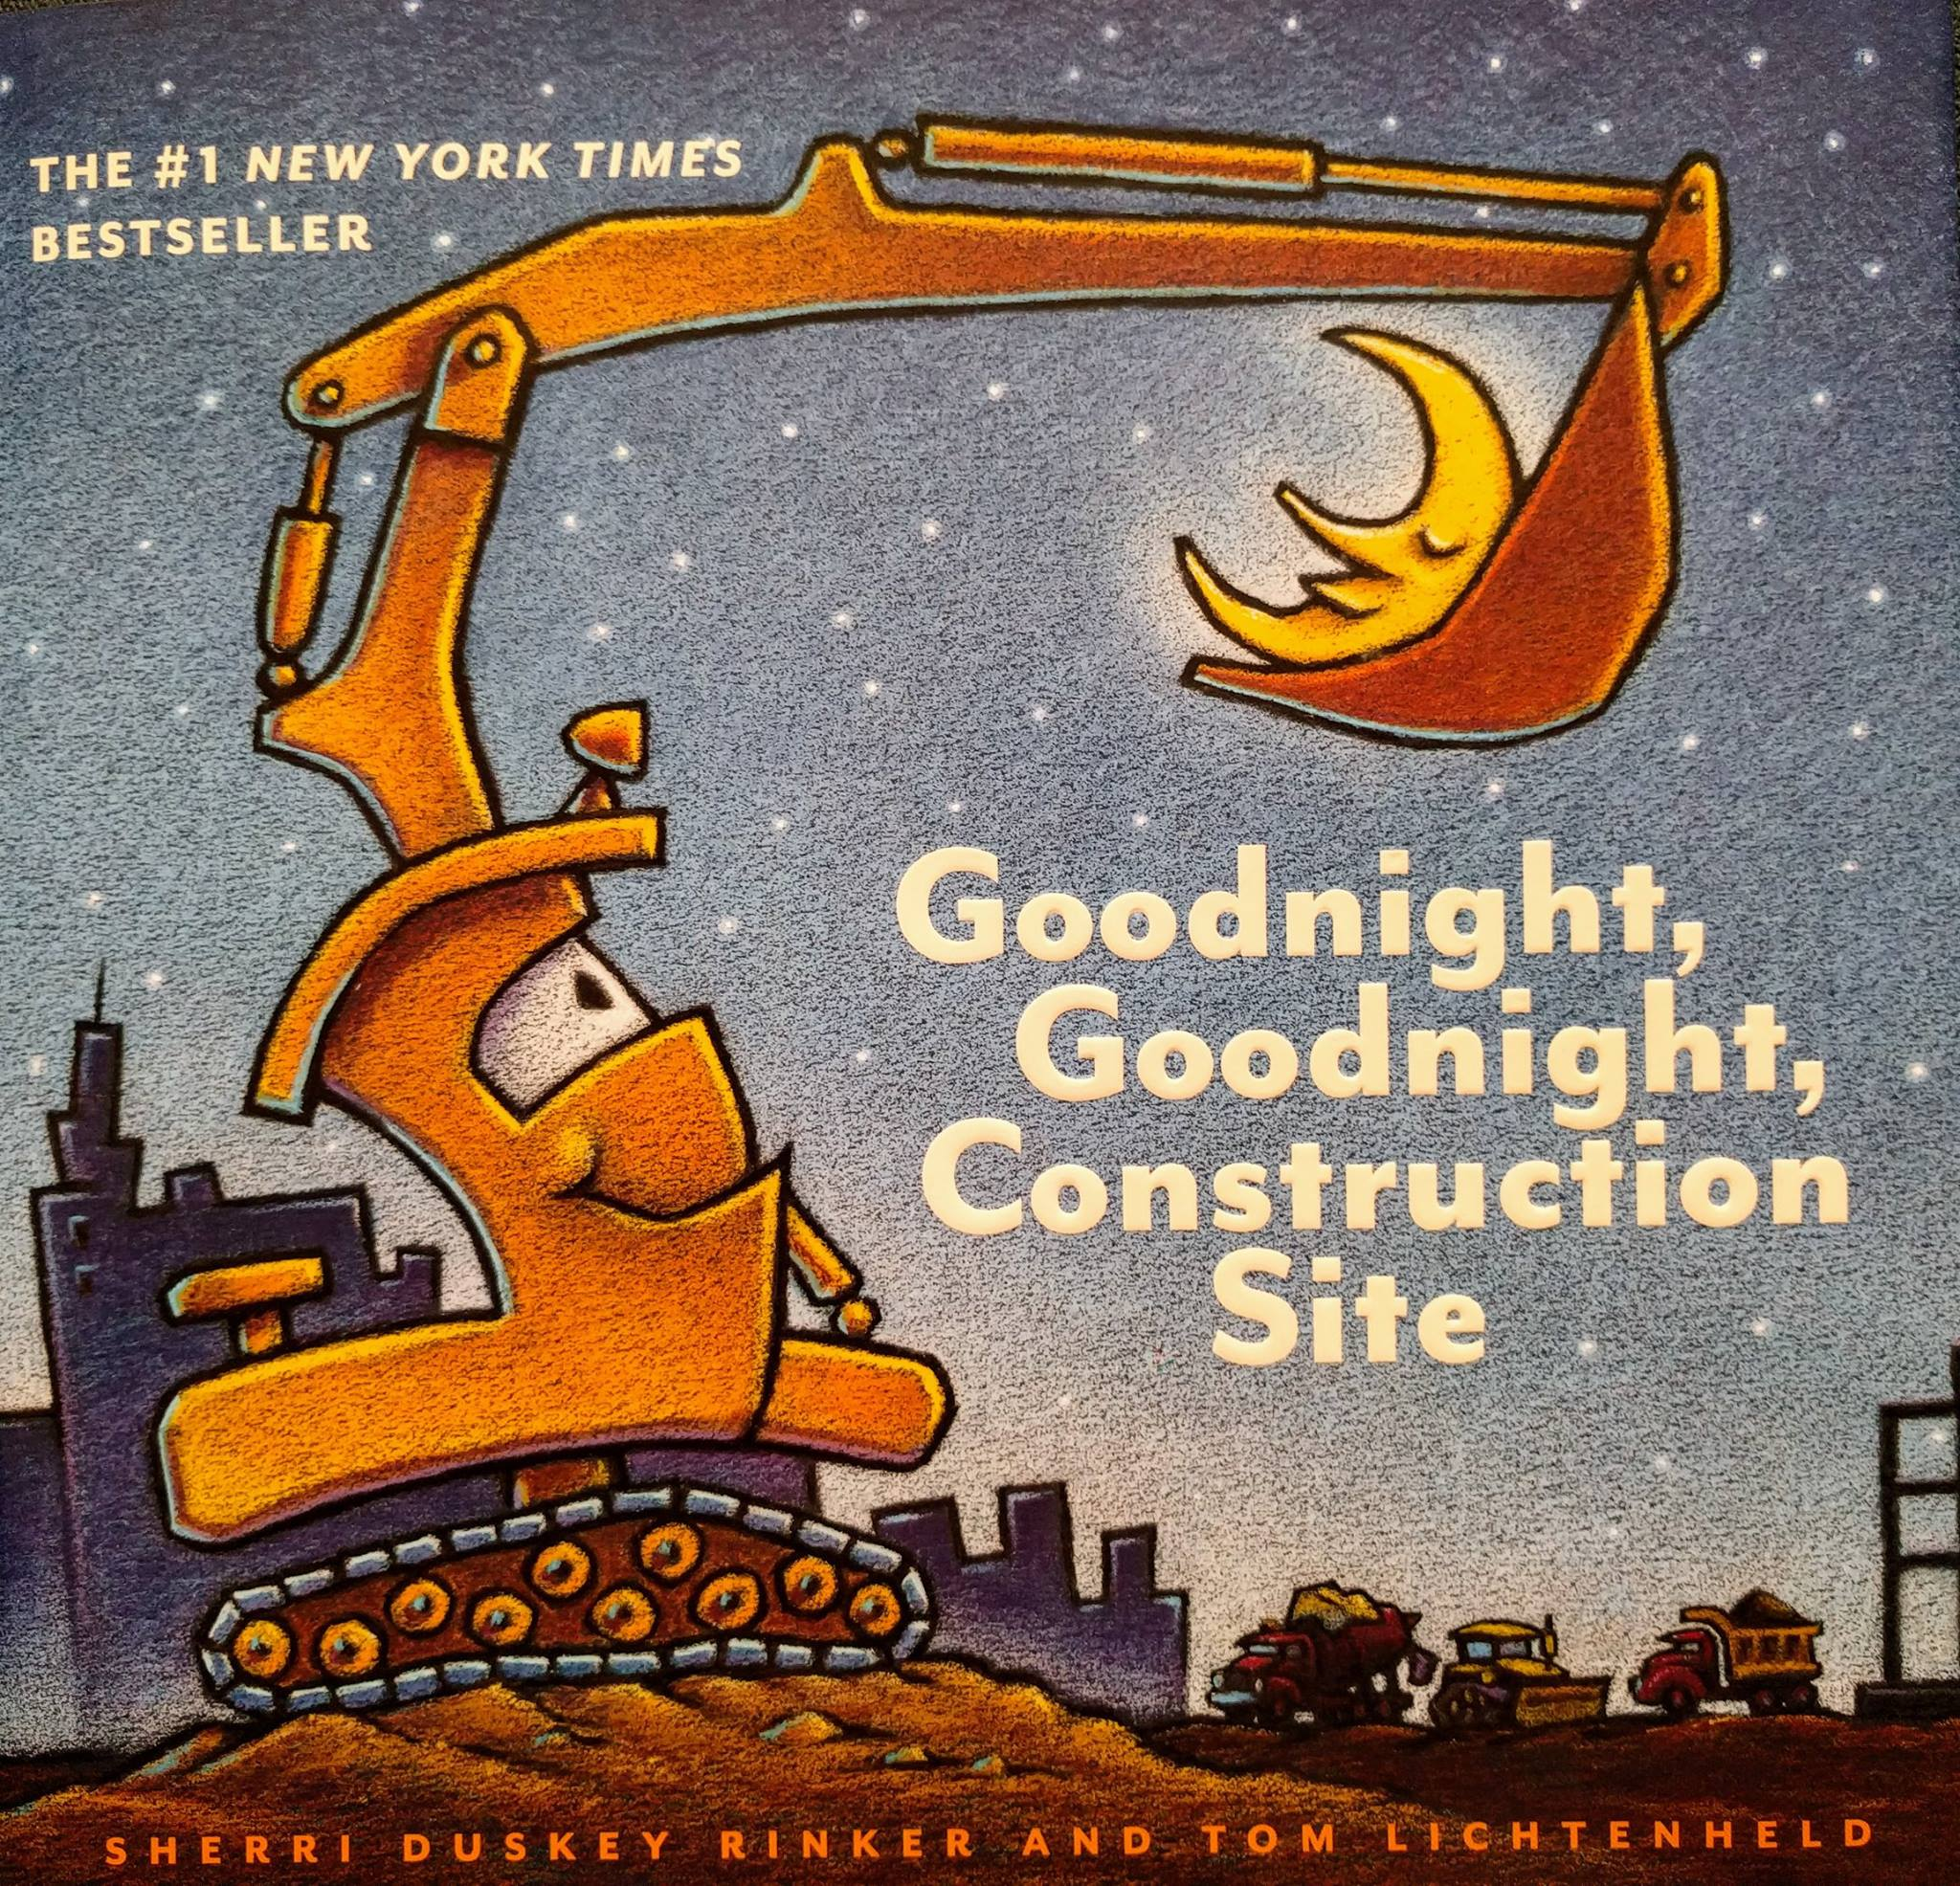 the kids book Goodnight, Goodnight, Construction Site, with a n excavator holding a sleeping half moon in its boom